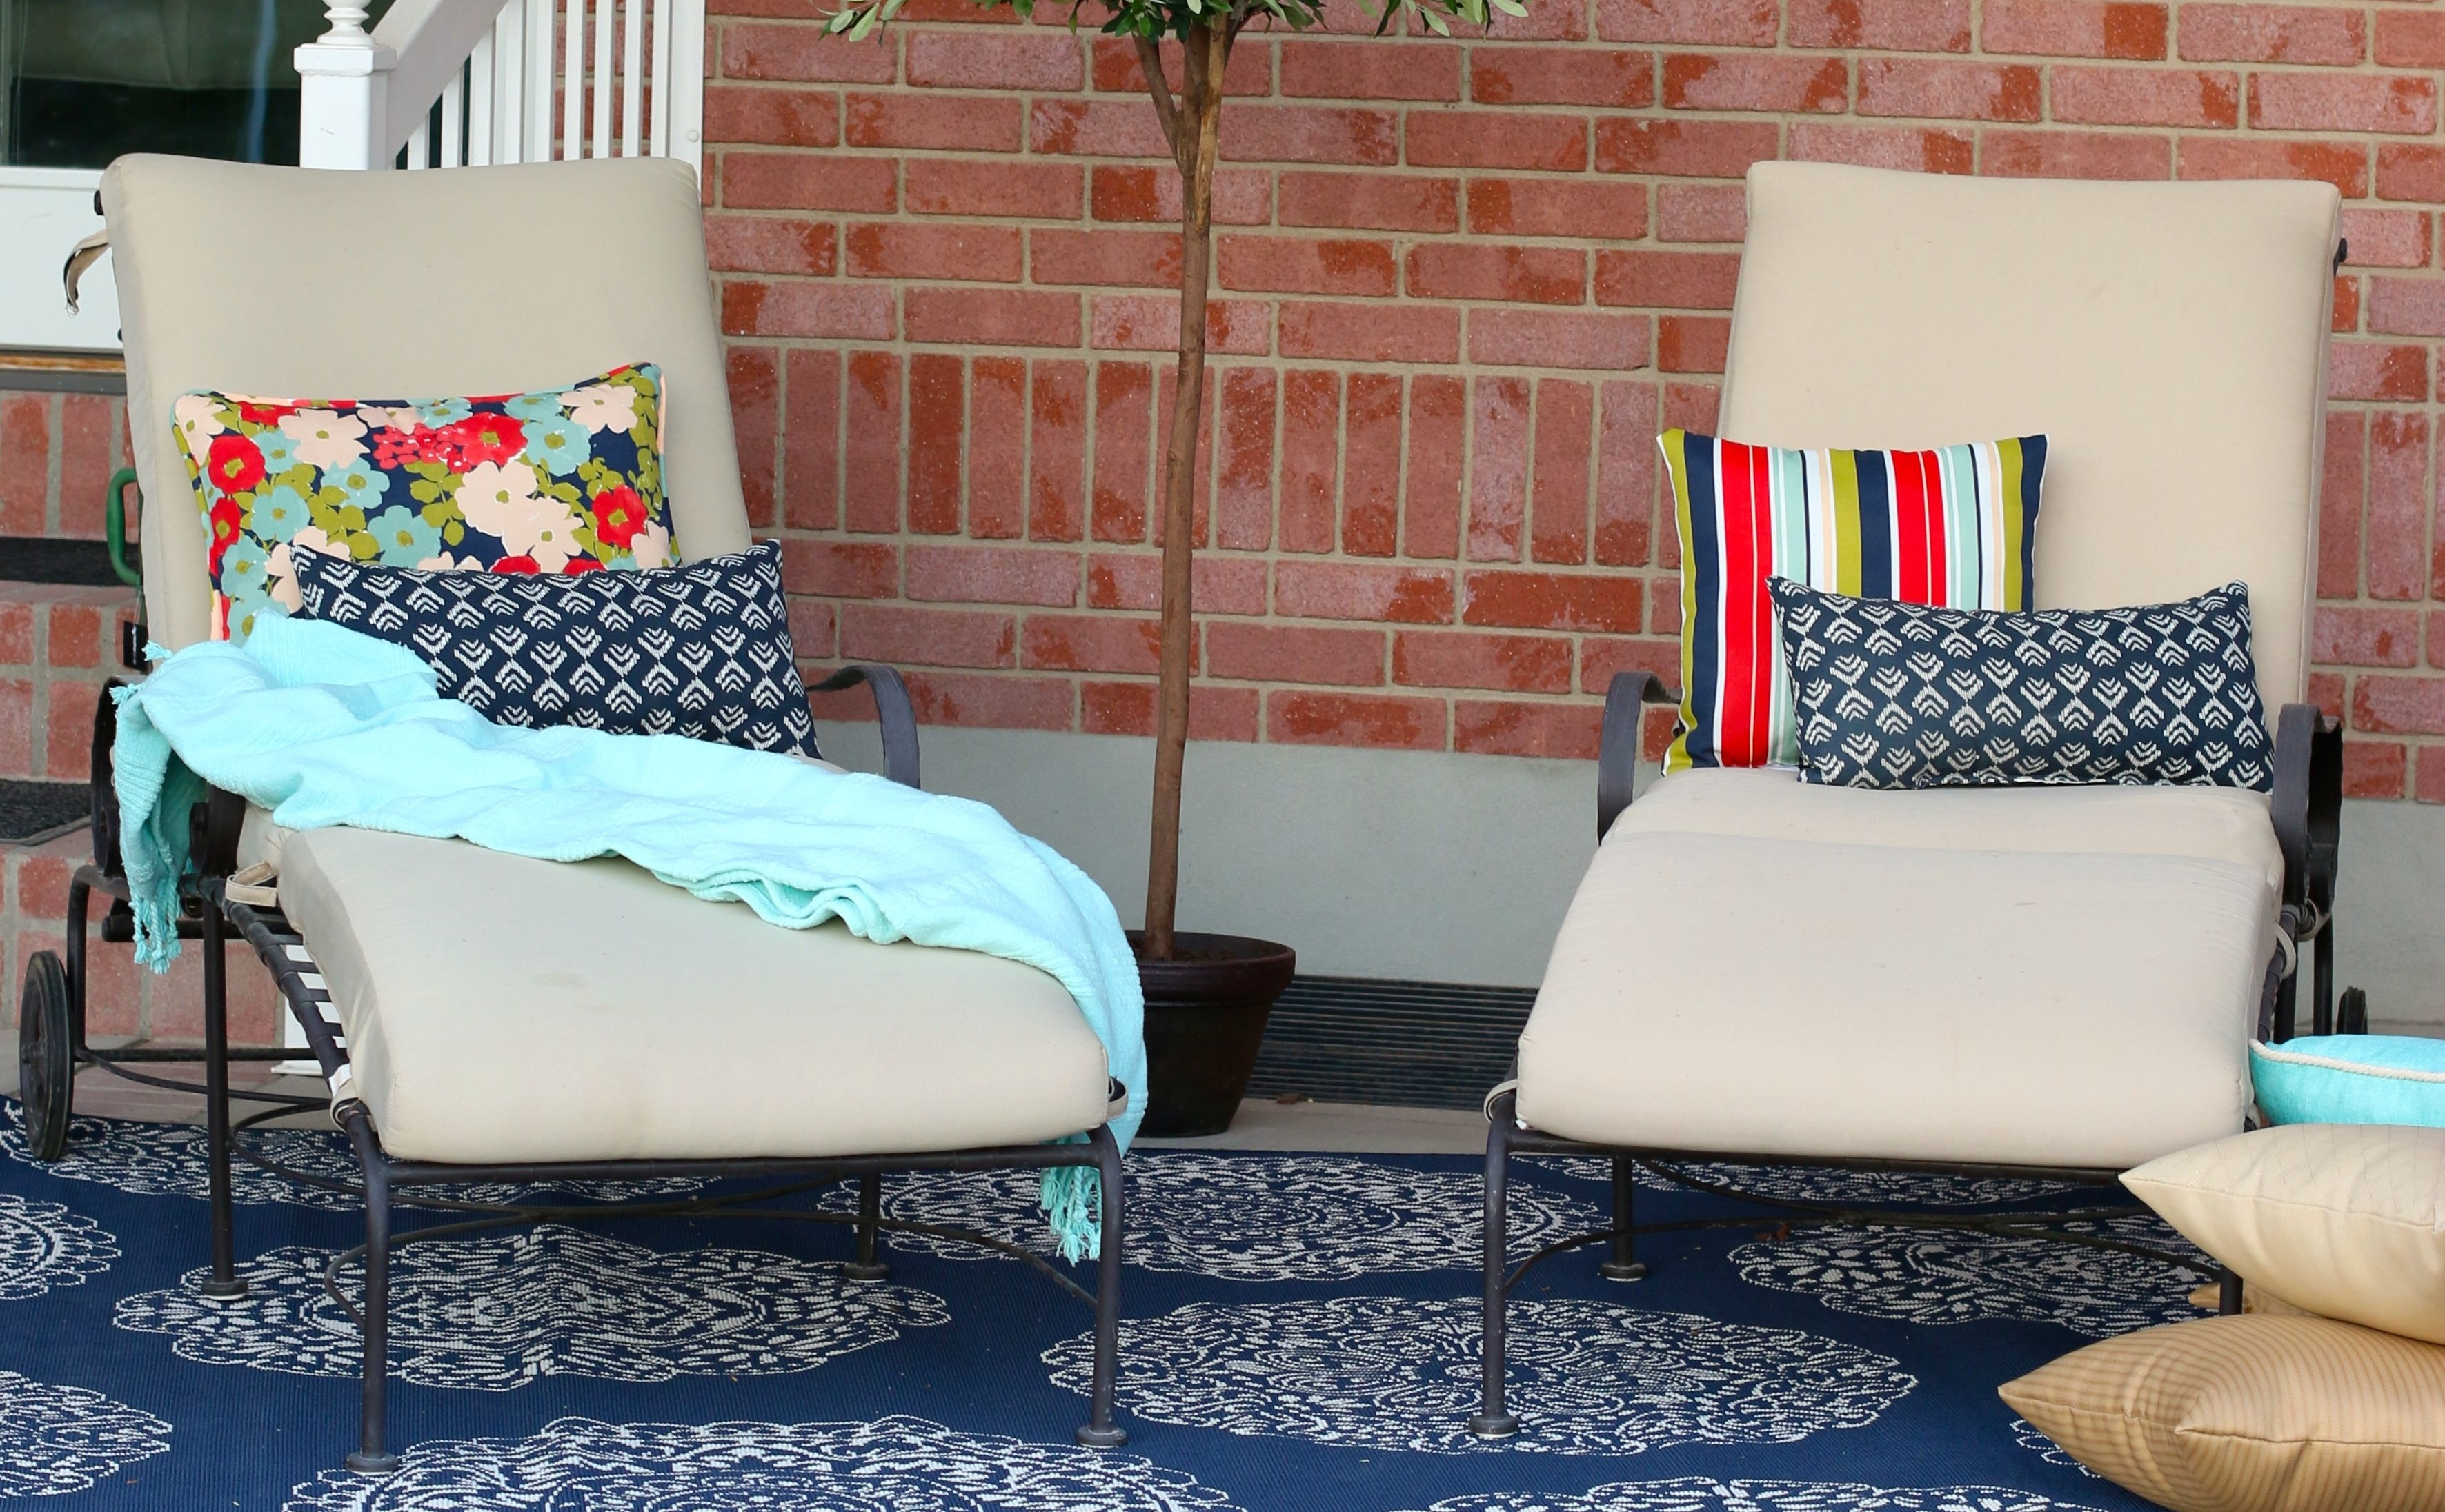 patio set from the home depot featuring brightly colored pillows and textured rug - Texture Patio Designs Home Depot